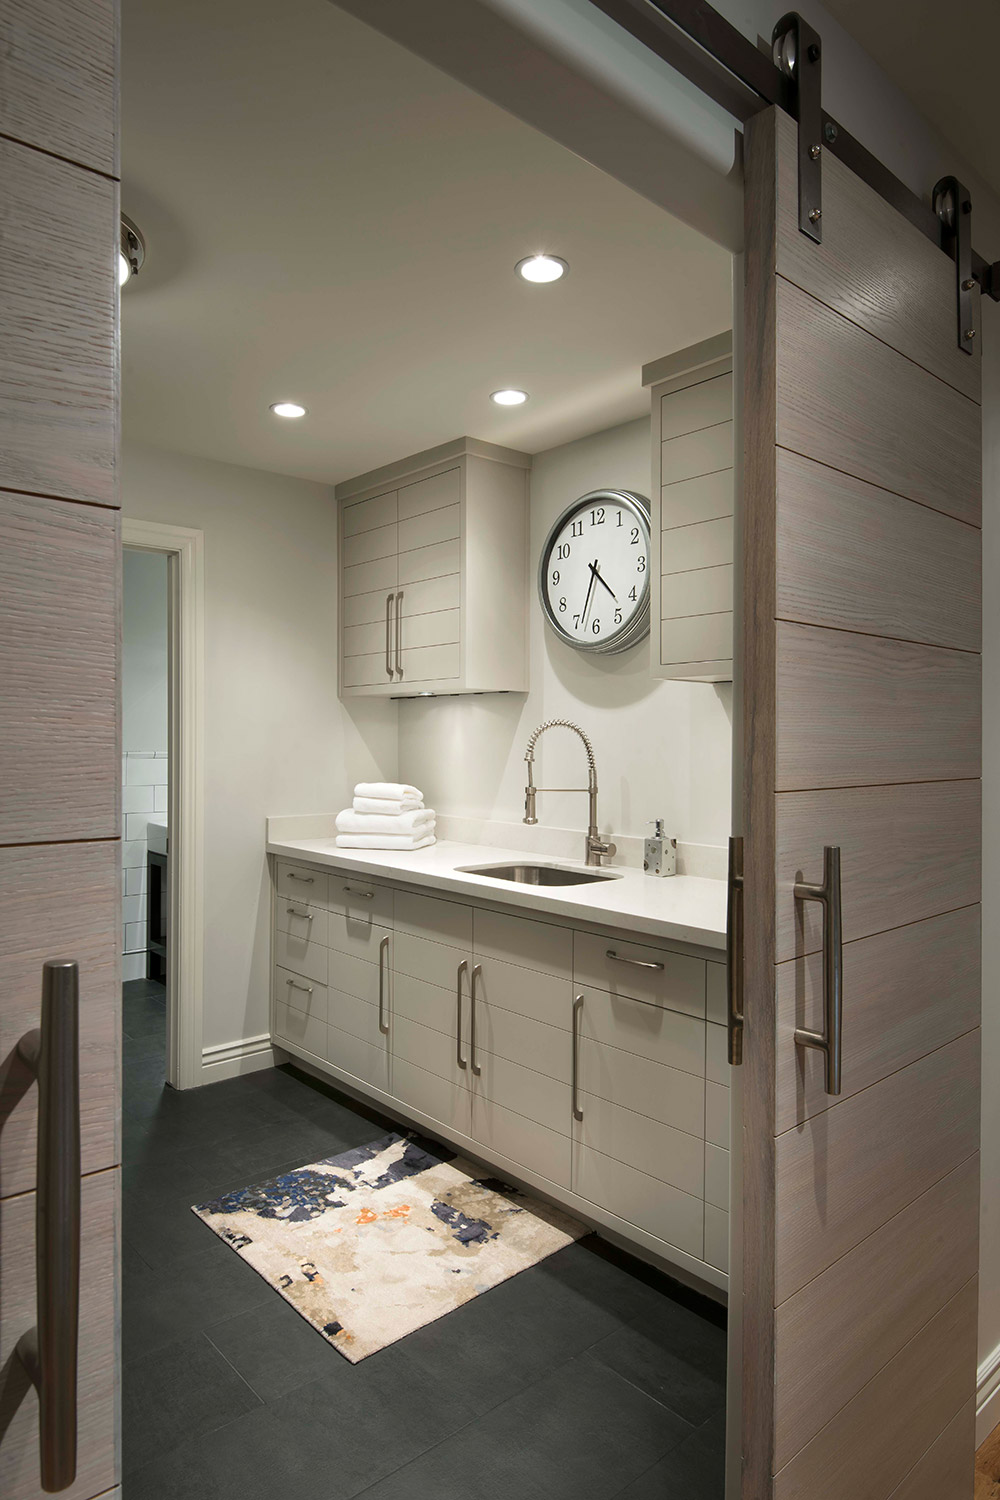 arizona-arcadia-camelback-designer-laundry-room-ideas-home-builders-217-15-10.jpg